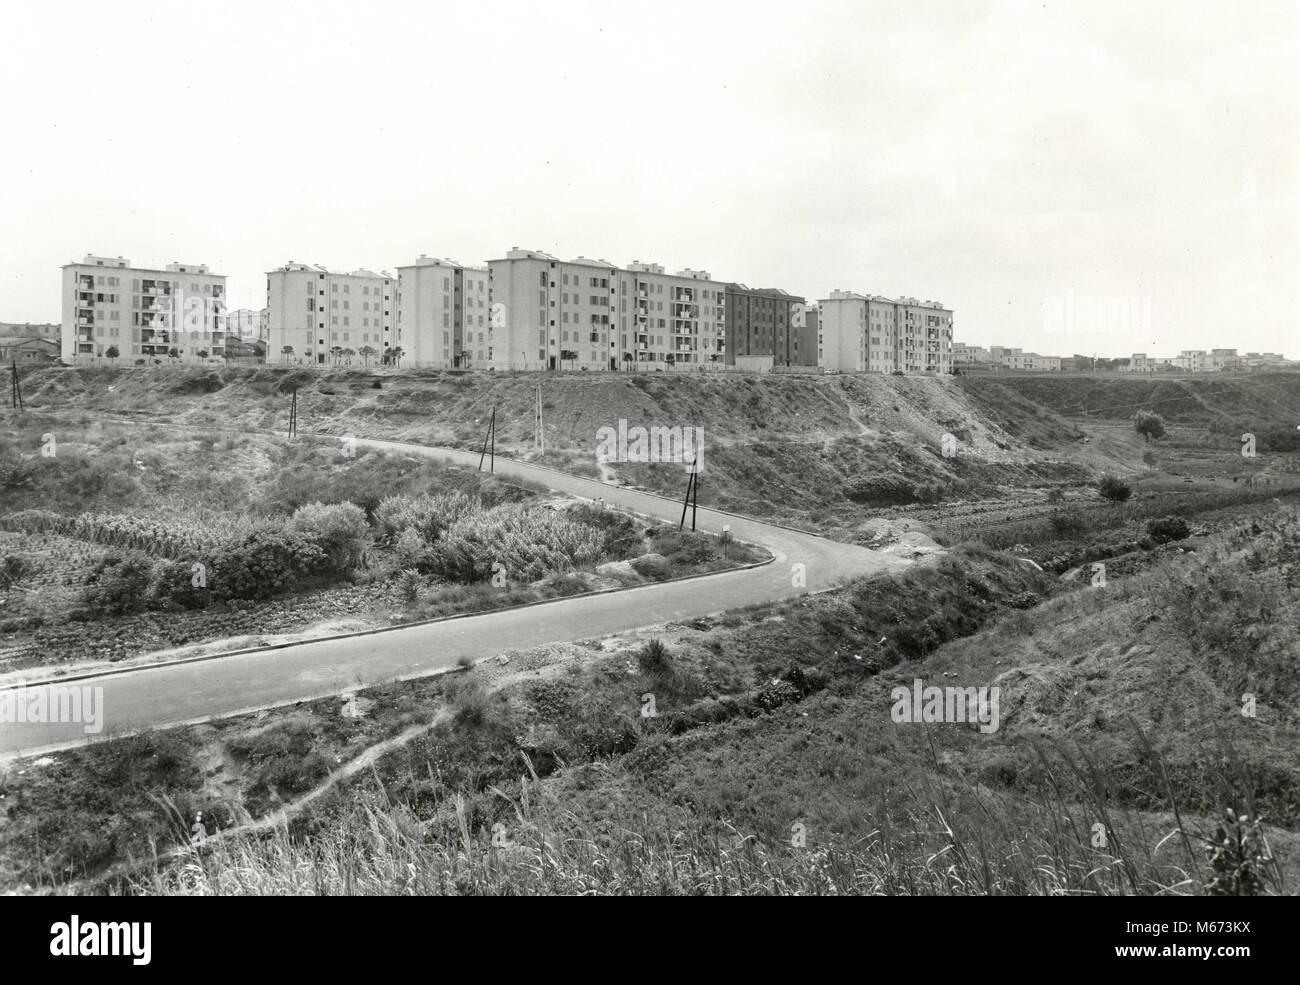 Primavalle Project buildings just completed, Rome, Italy 1950 - Stock Image